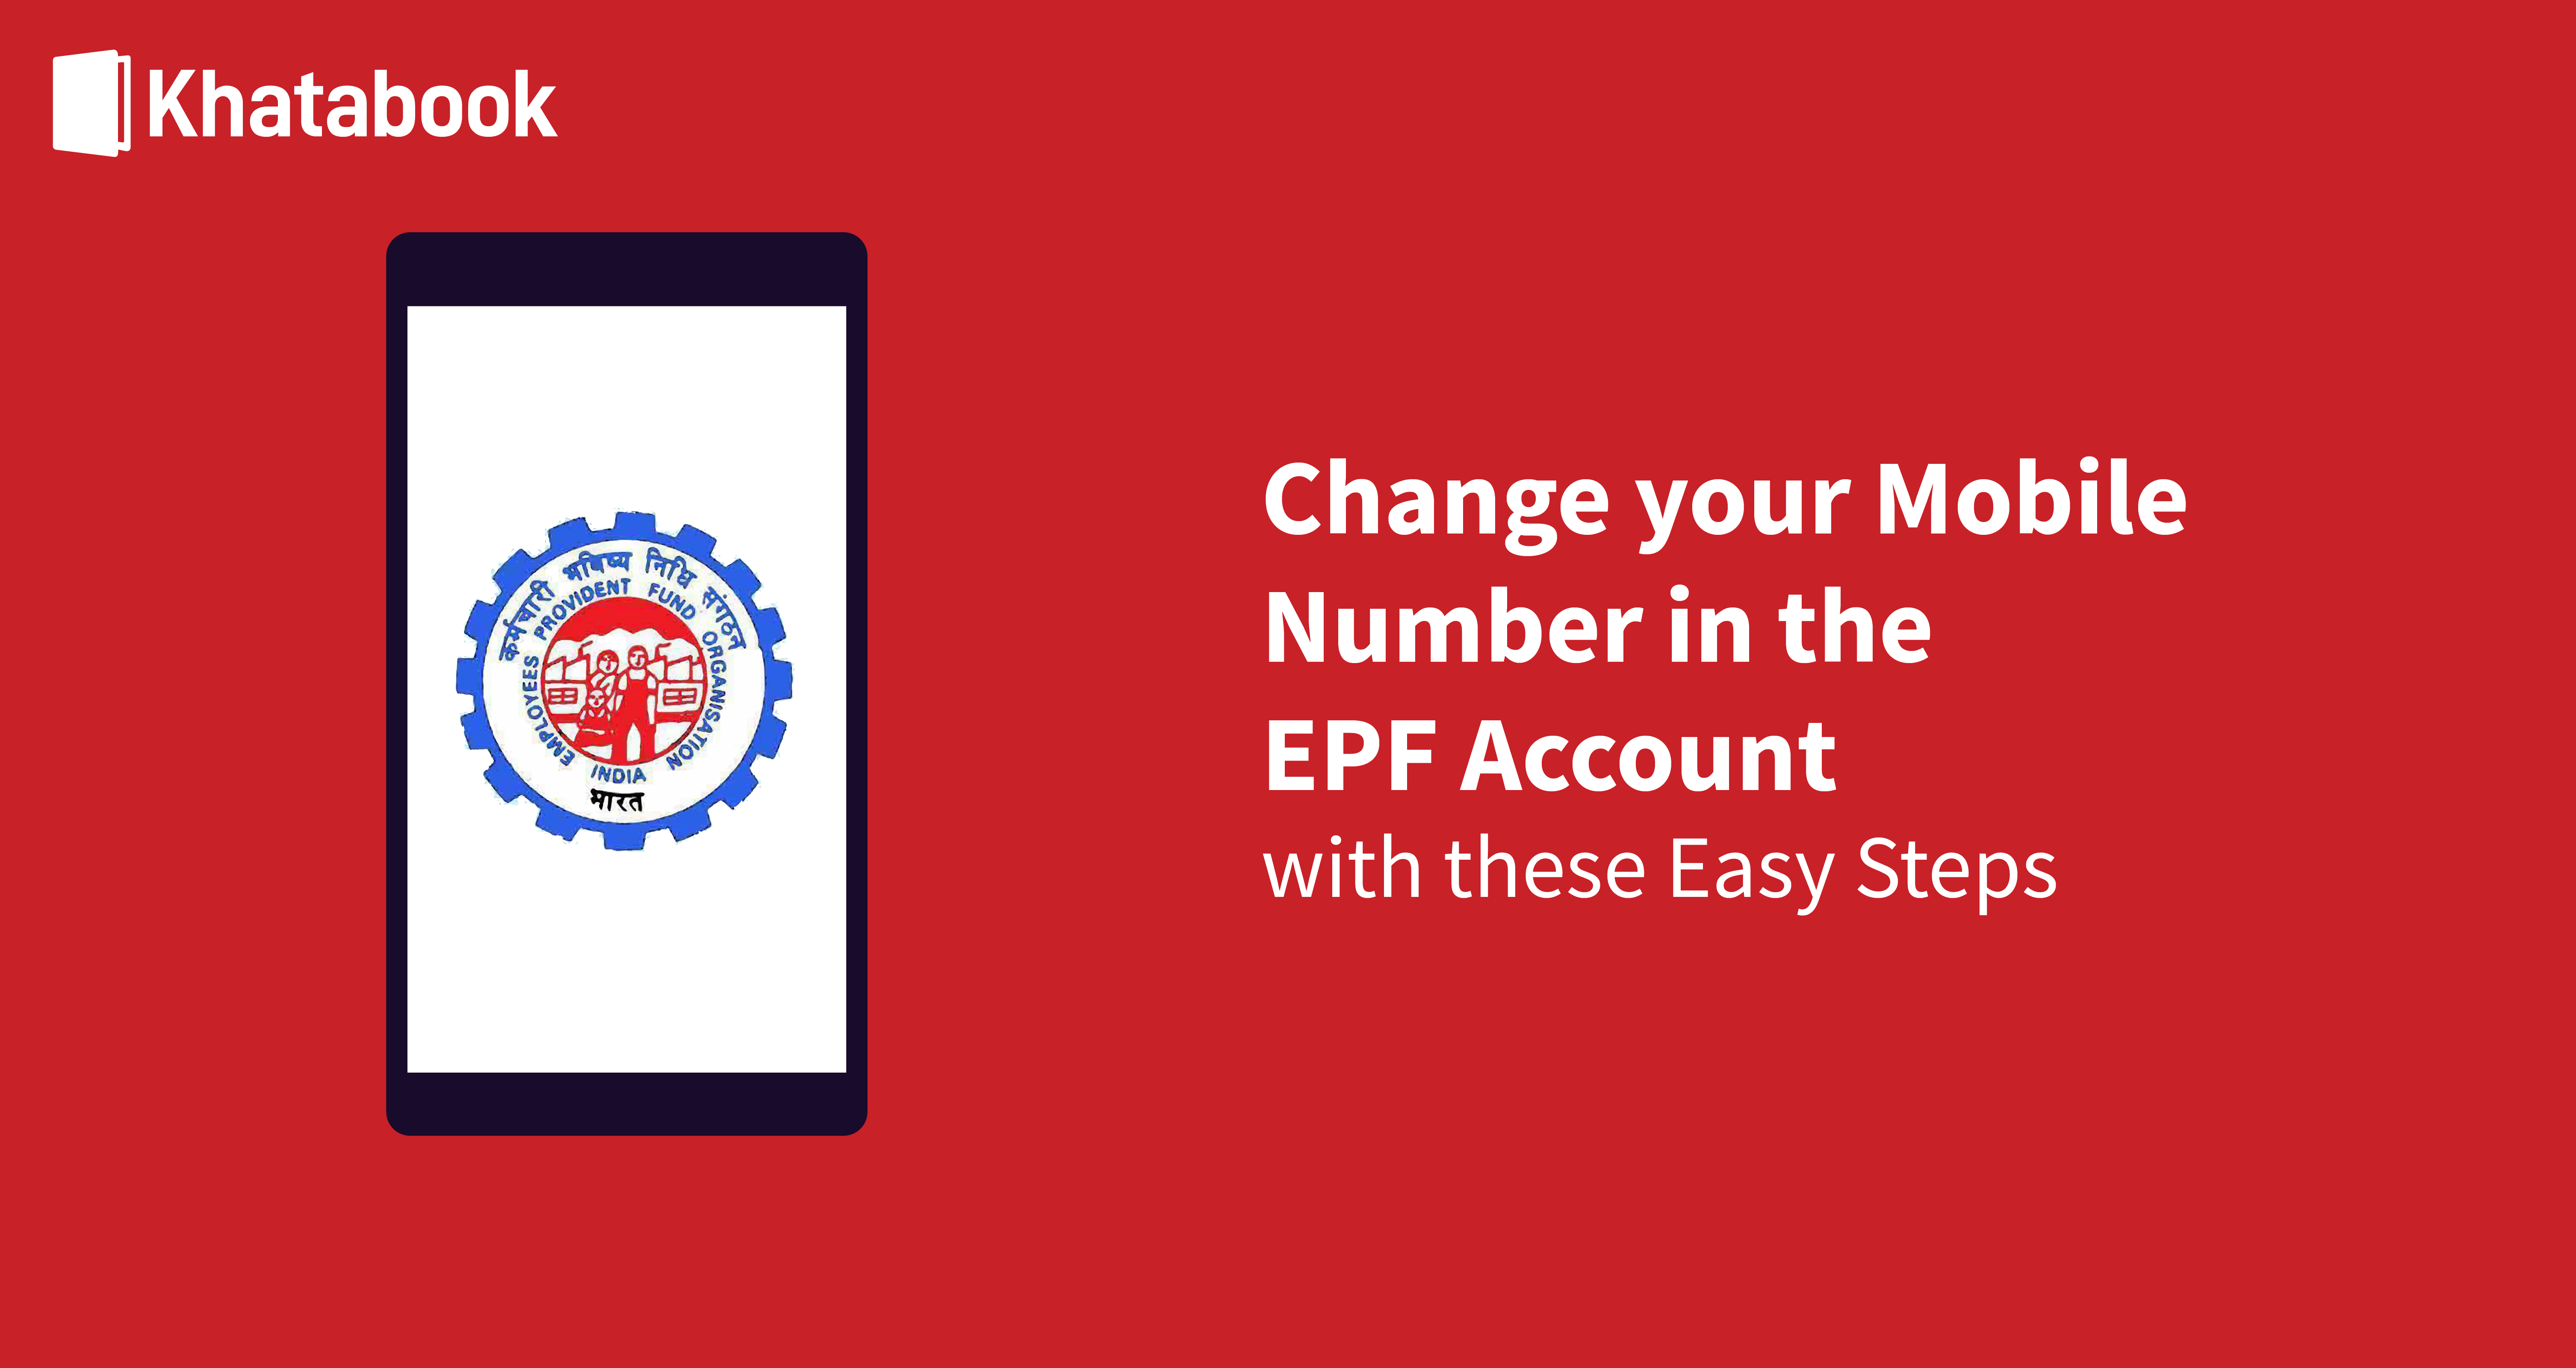 How To Change your Mobile Number in the EPF Account